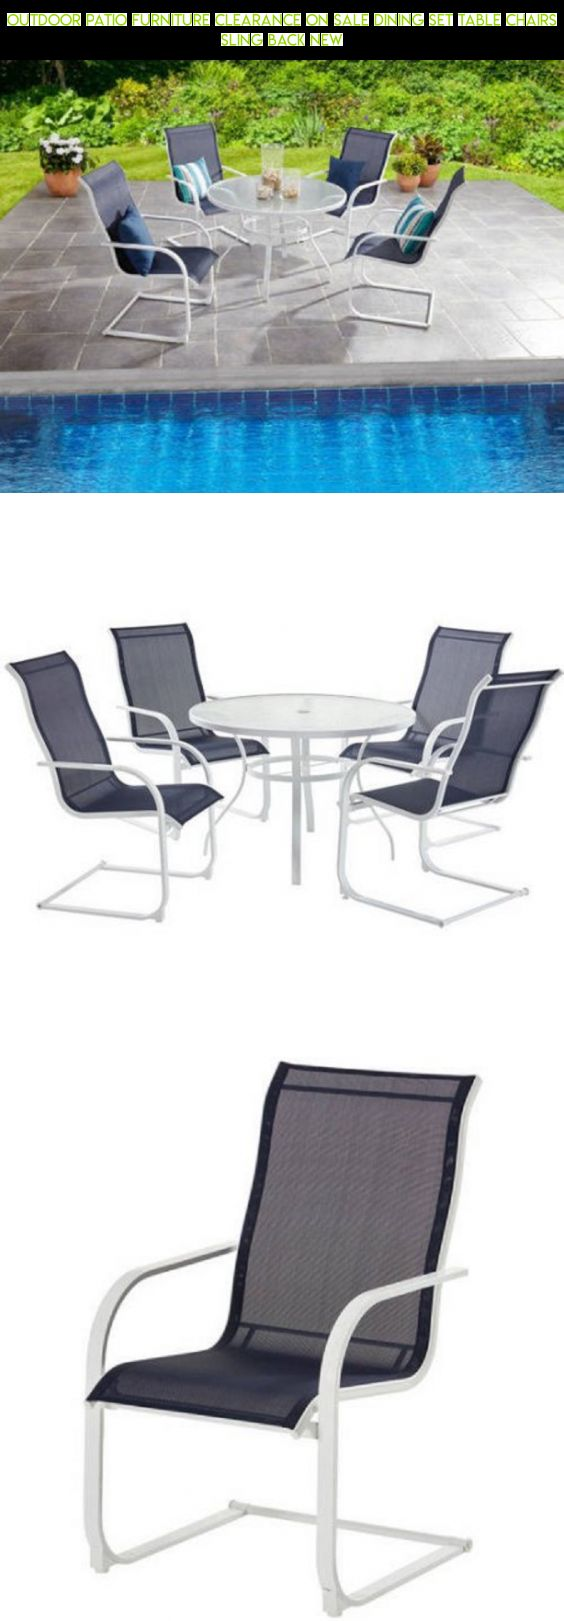 Outdoor Patio Furniture Clearance On Sale Dining Set Table Chairs Sling  Back NEW #patio #